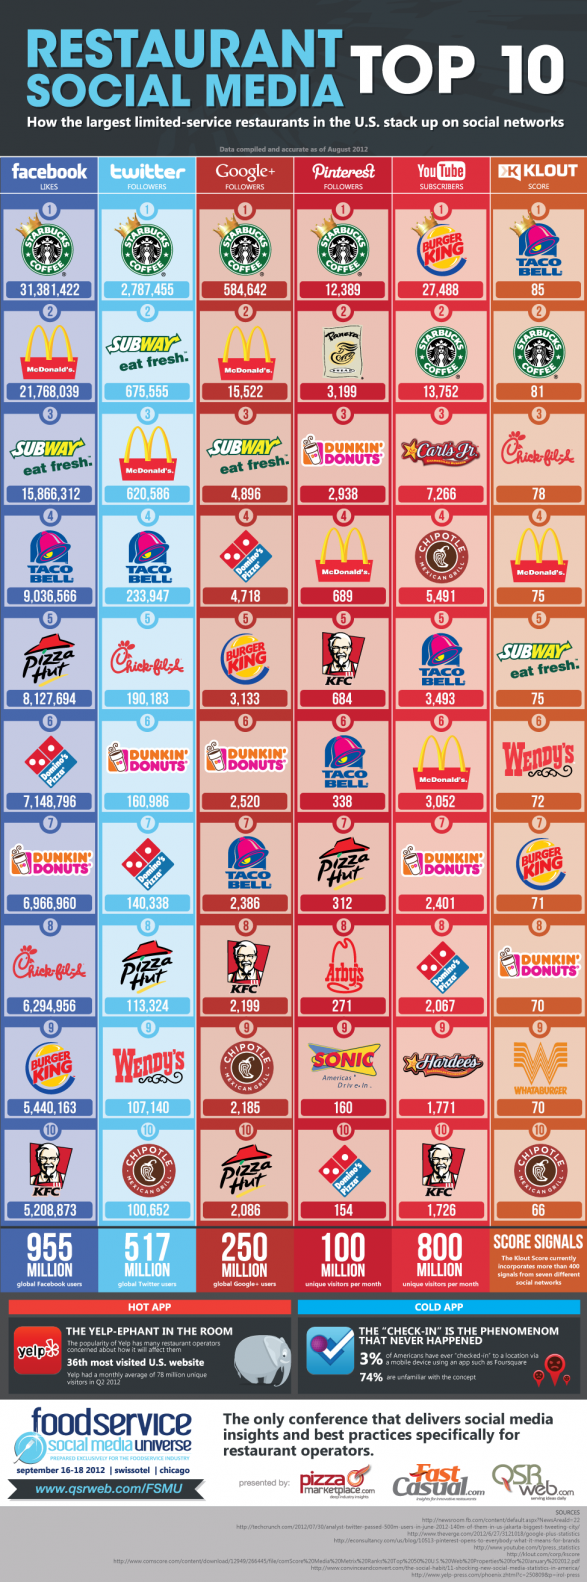 Infographic - Top 10 Fast Food Restaurants On Social Media